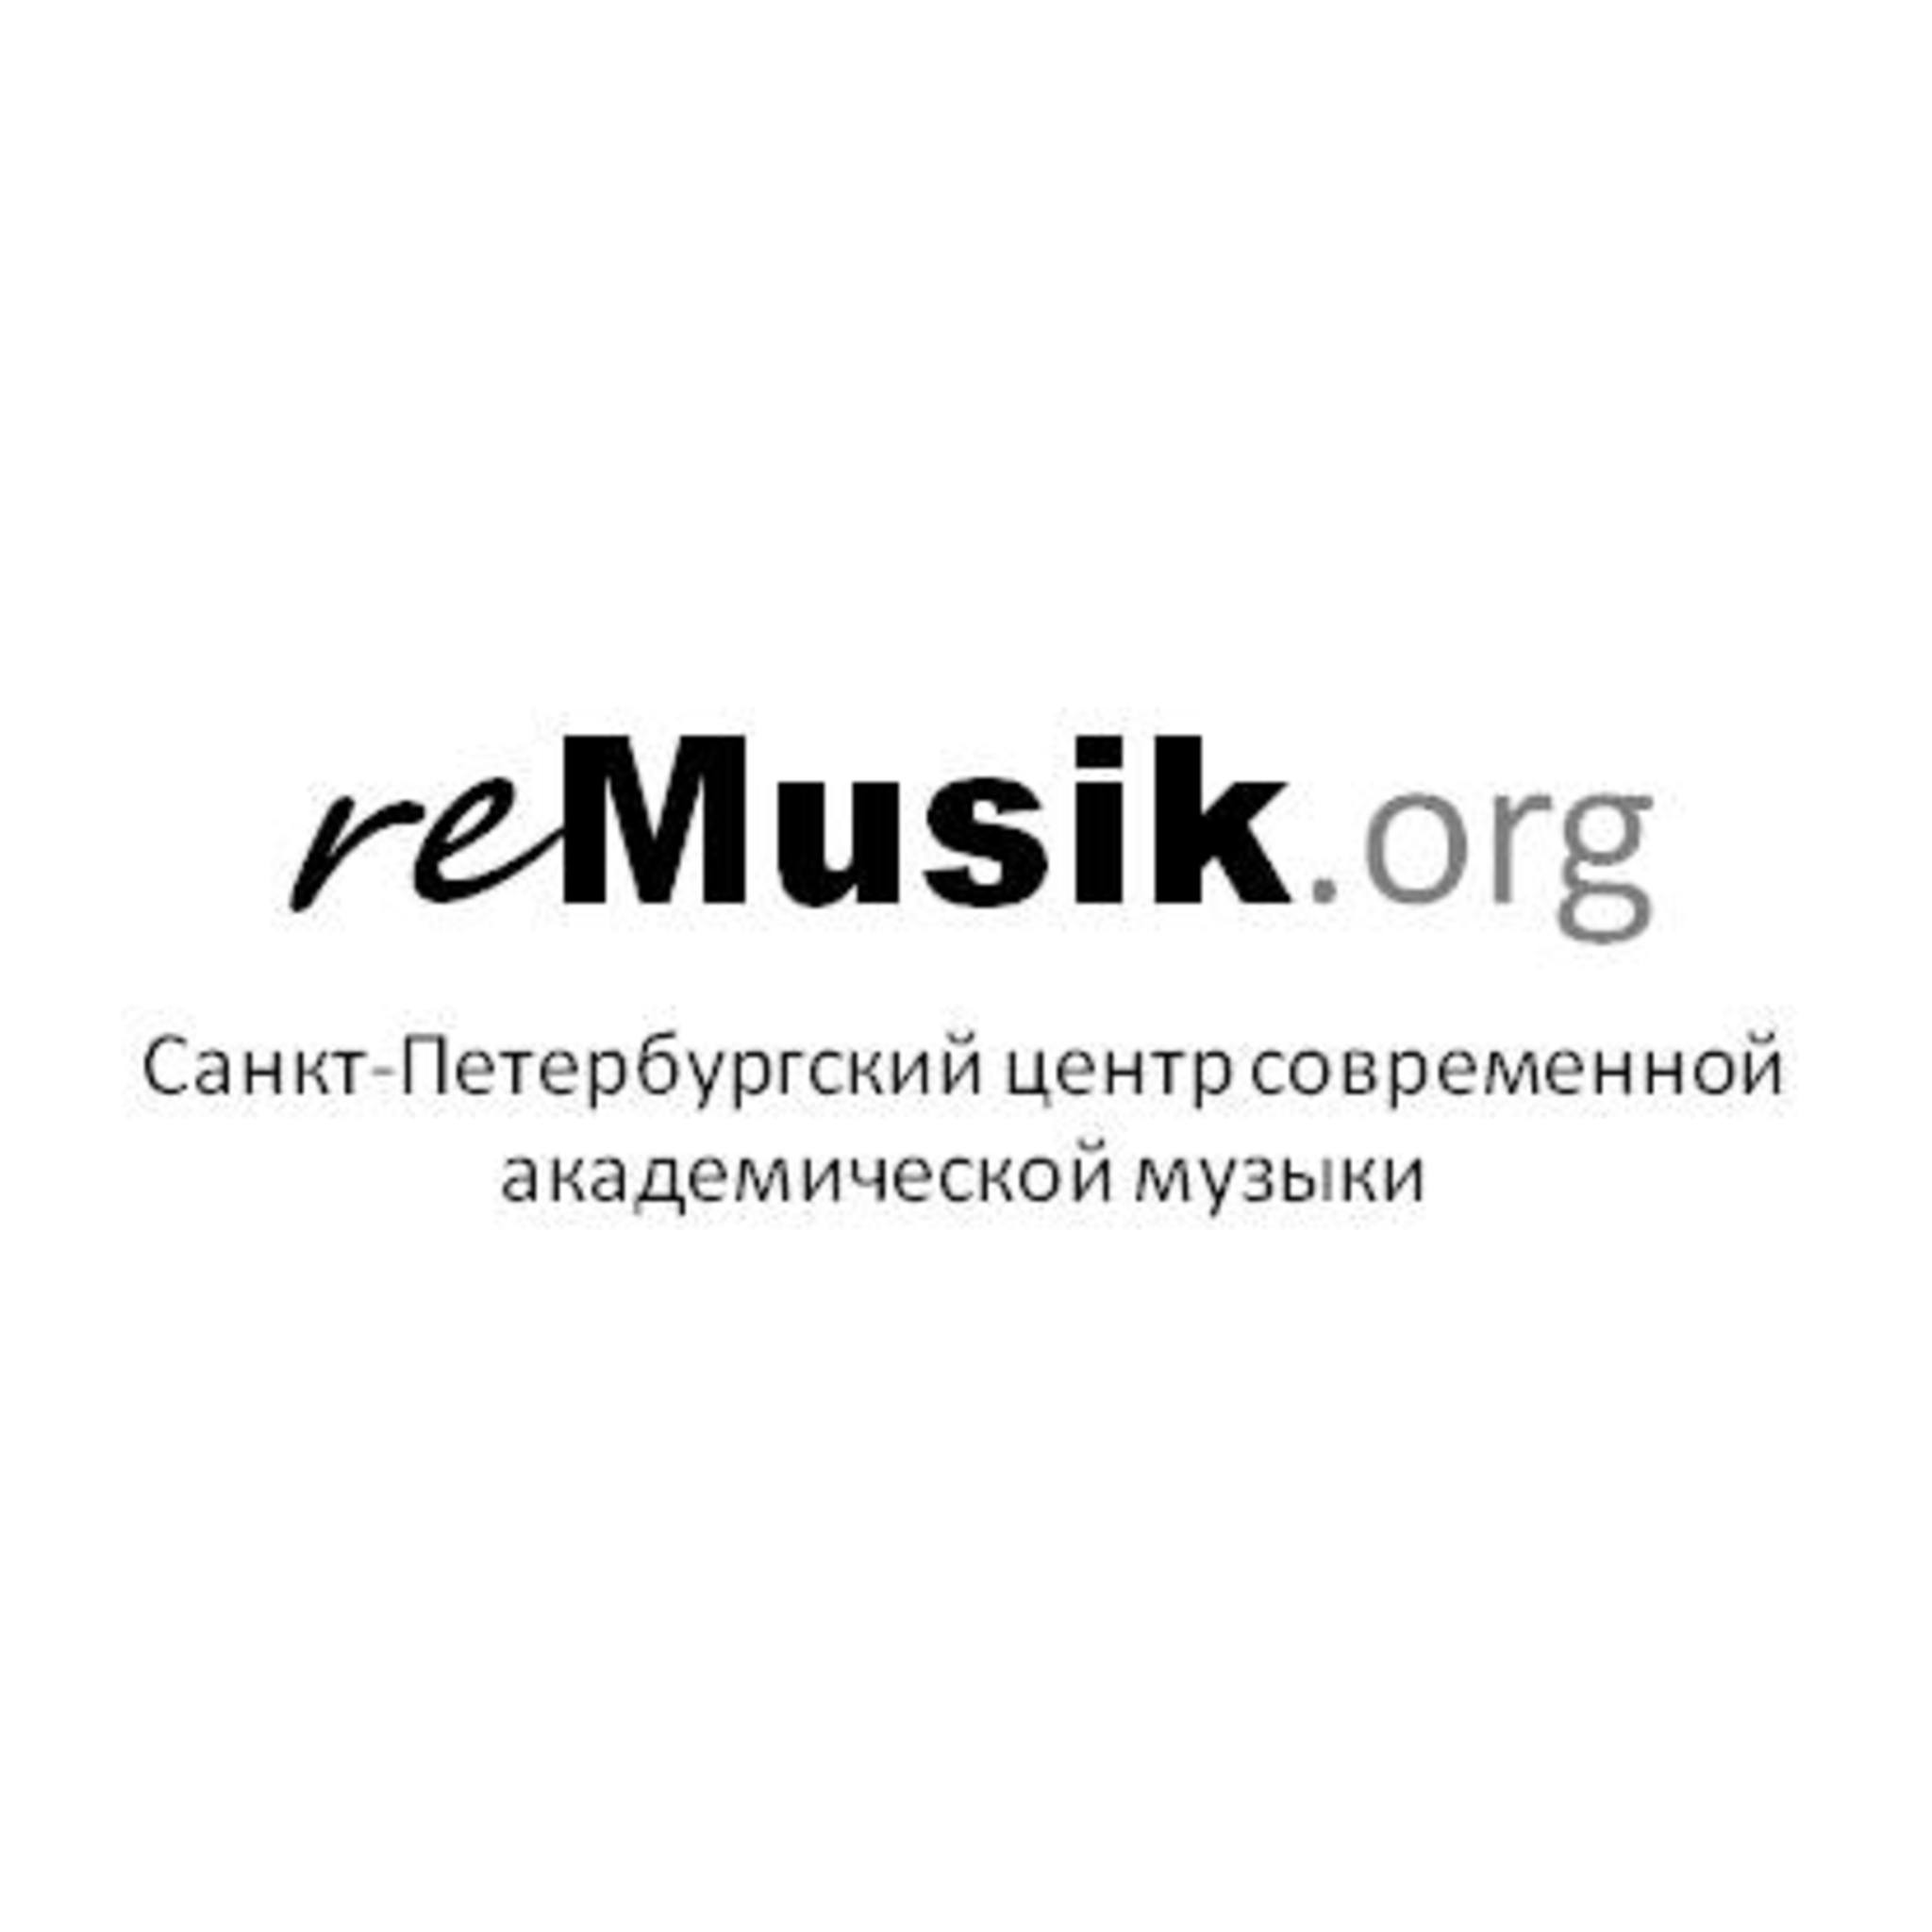 St. Petersburg Center of contemporary classical music reMusik.org